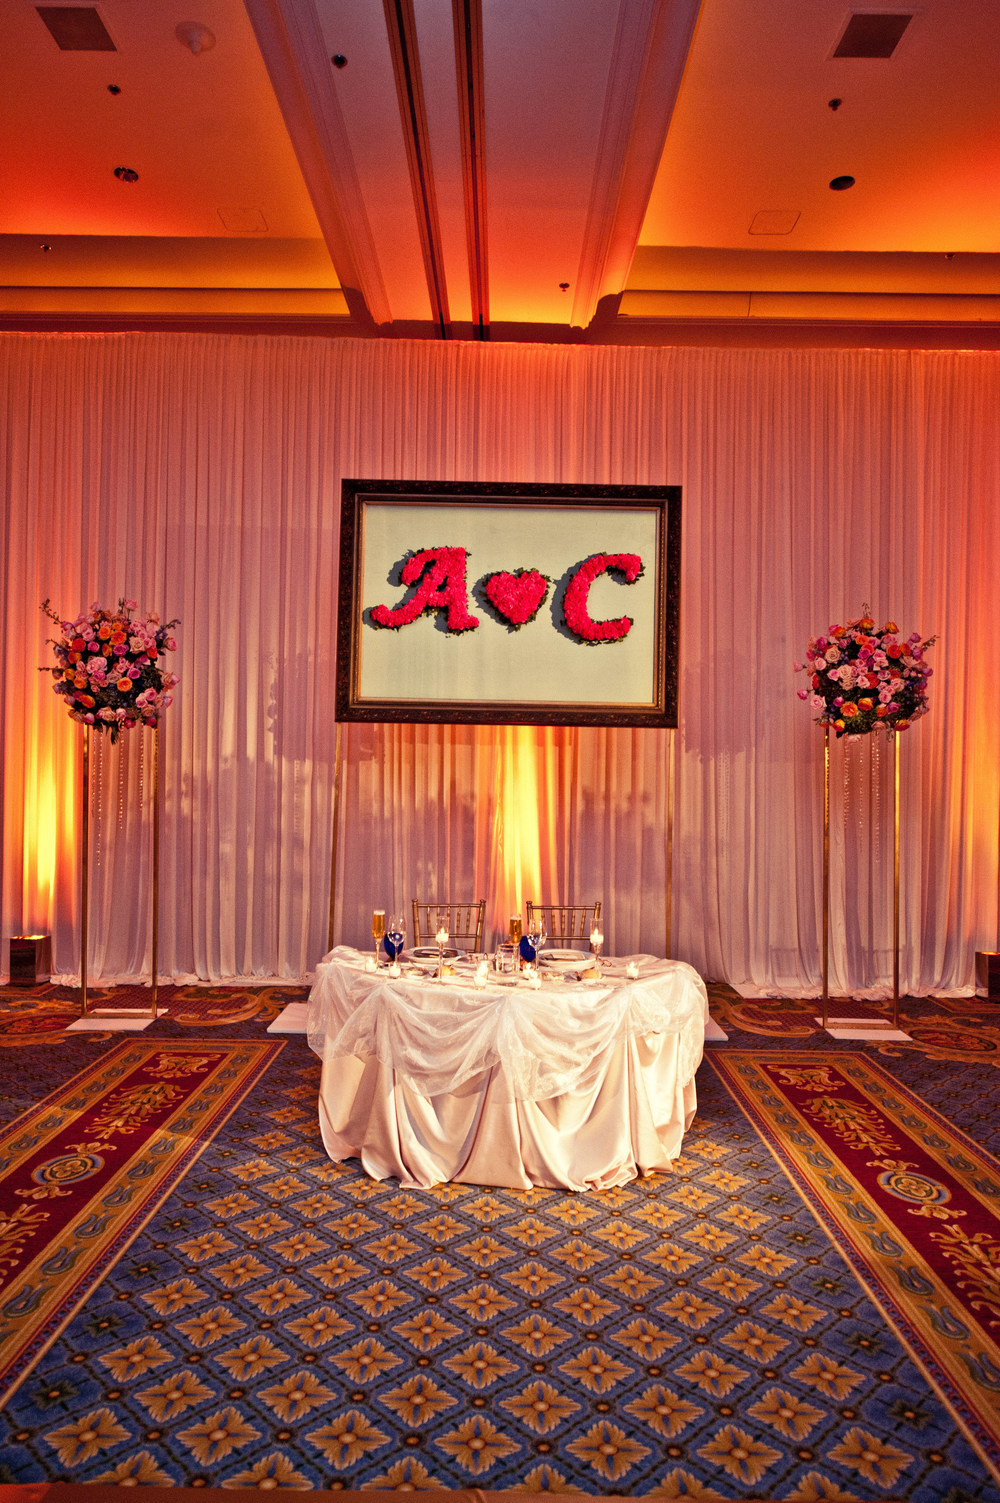 Wedding-0529-(ZF-8051-82656-1-530).jpg